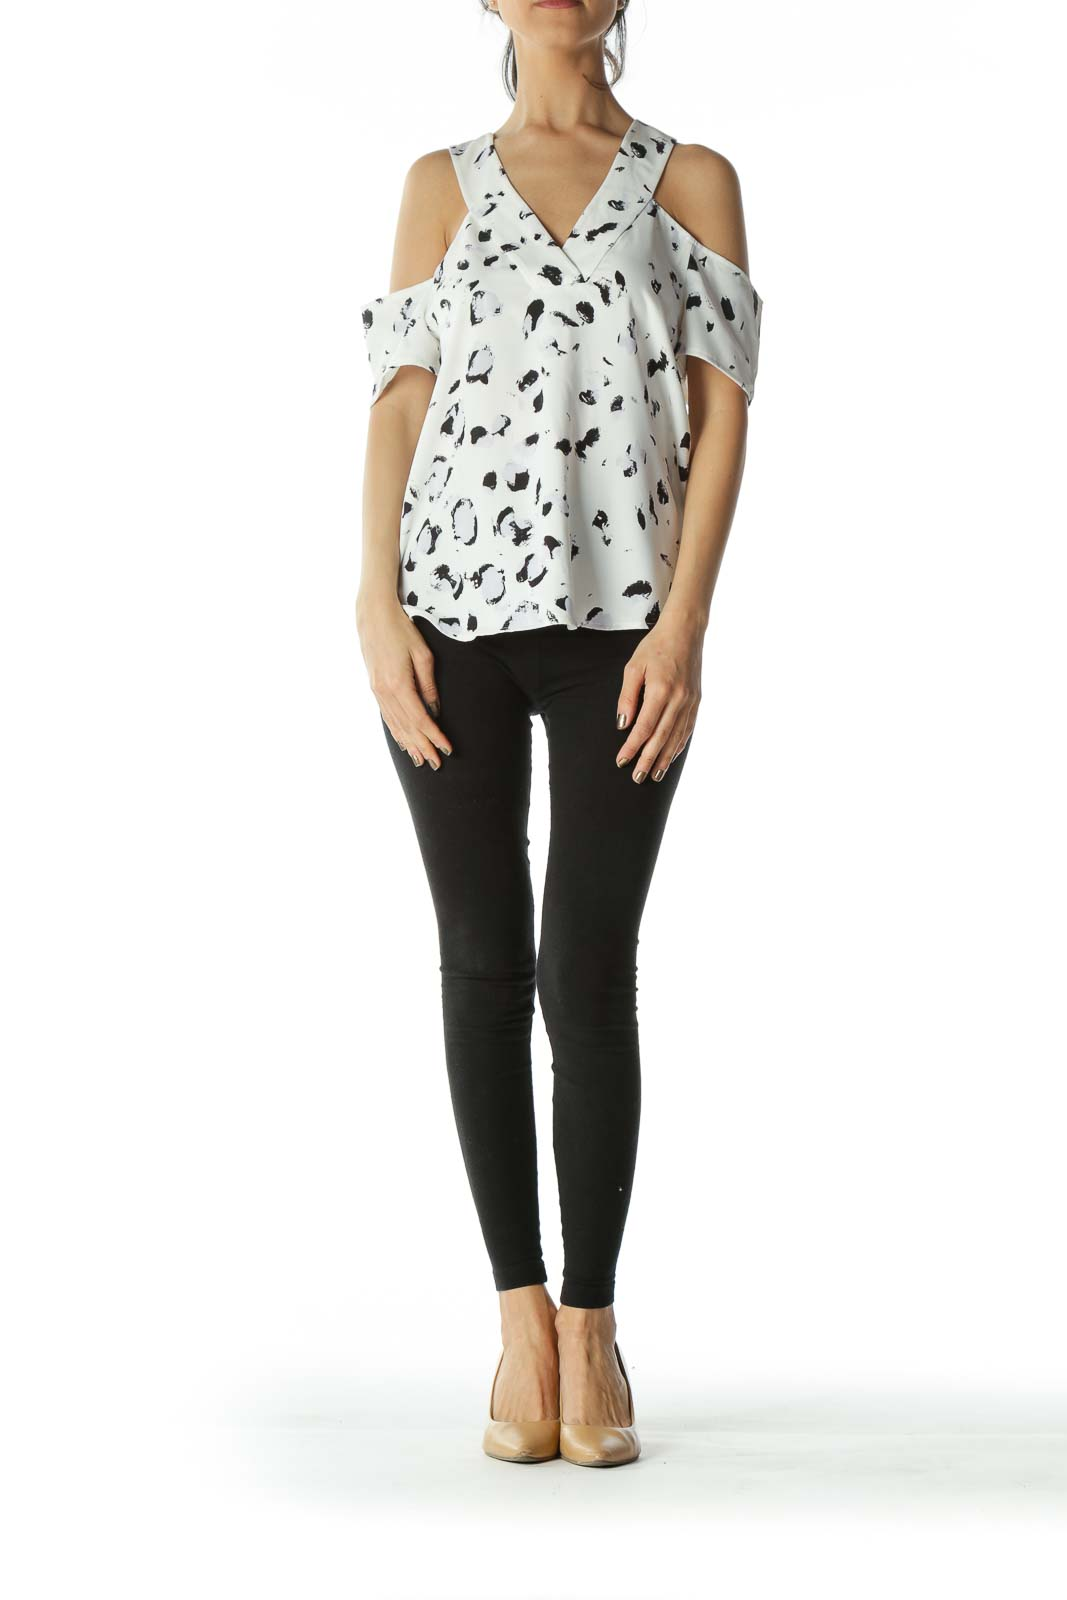 White and Black Graphic Off-The-Shoulder V-Neck Blouse